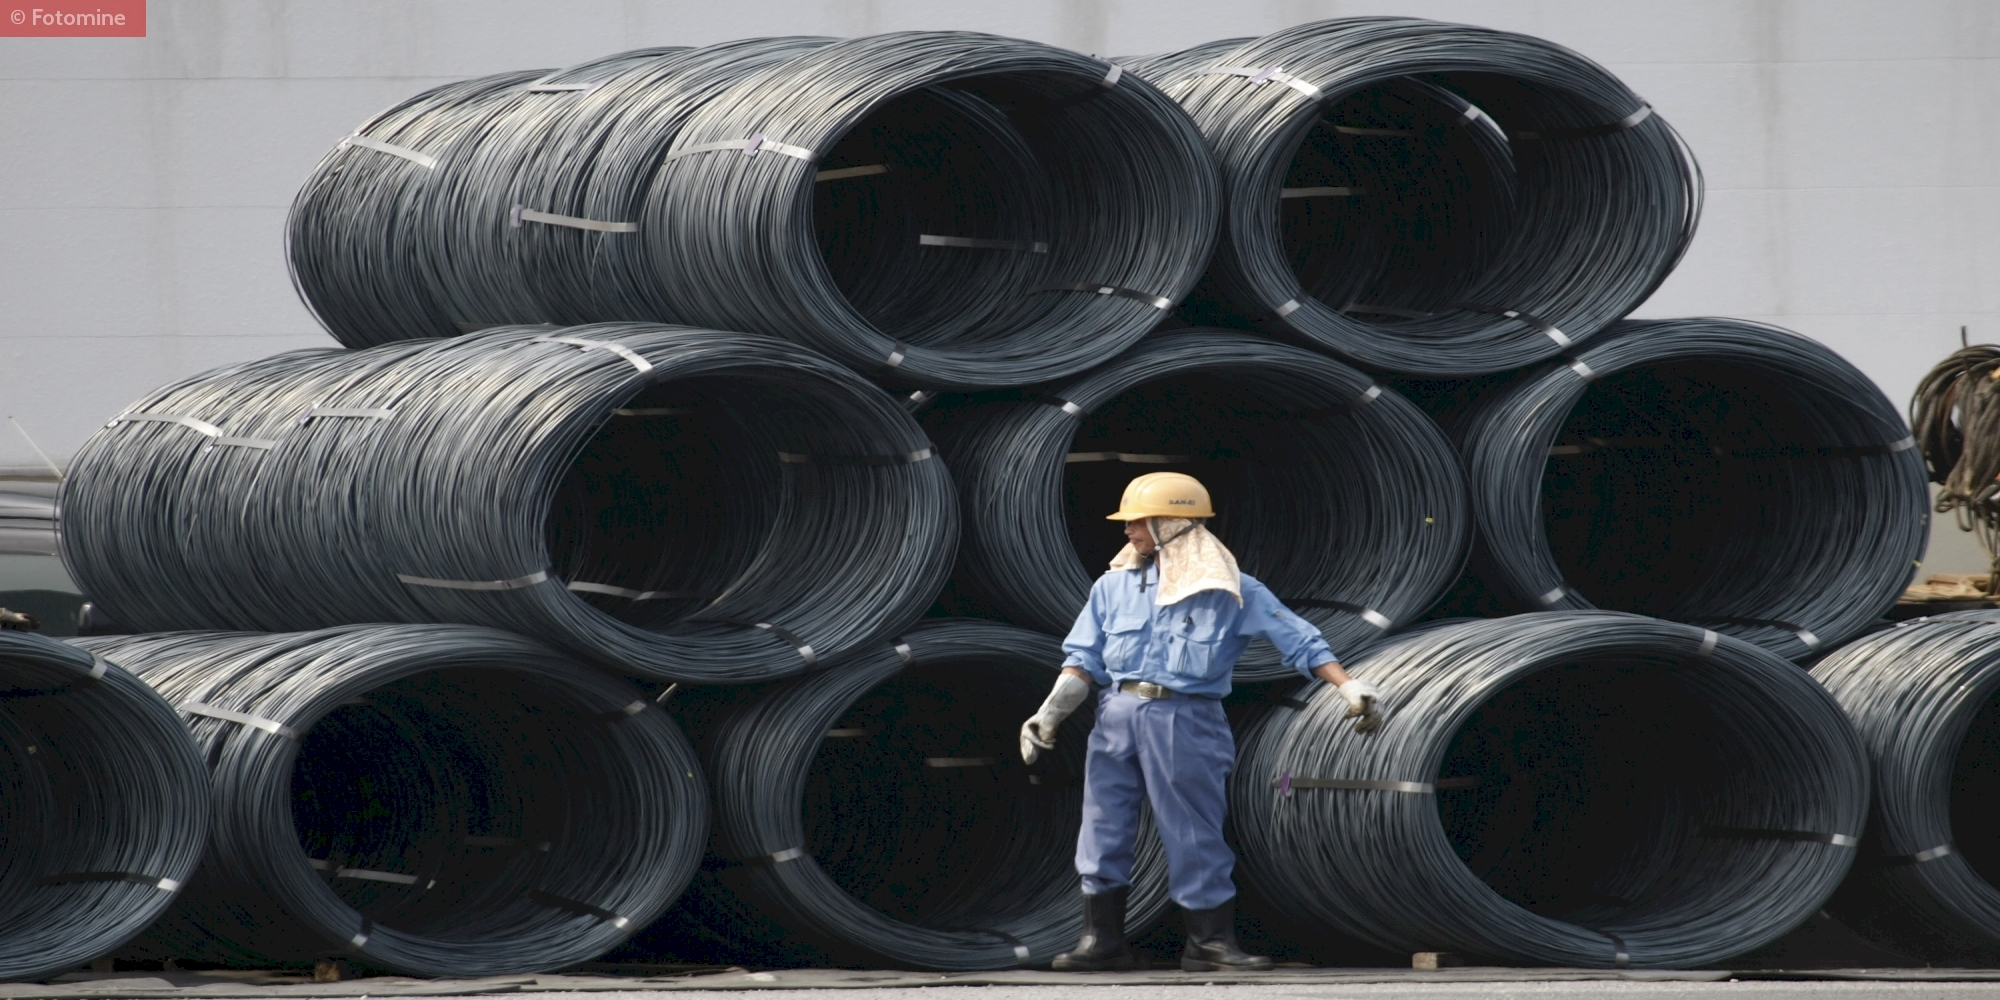 Workers Handling Wire Rod Coils in Stockyard of Steel Mills in China